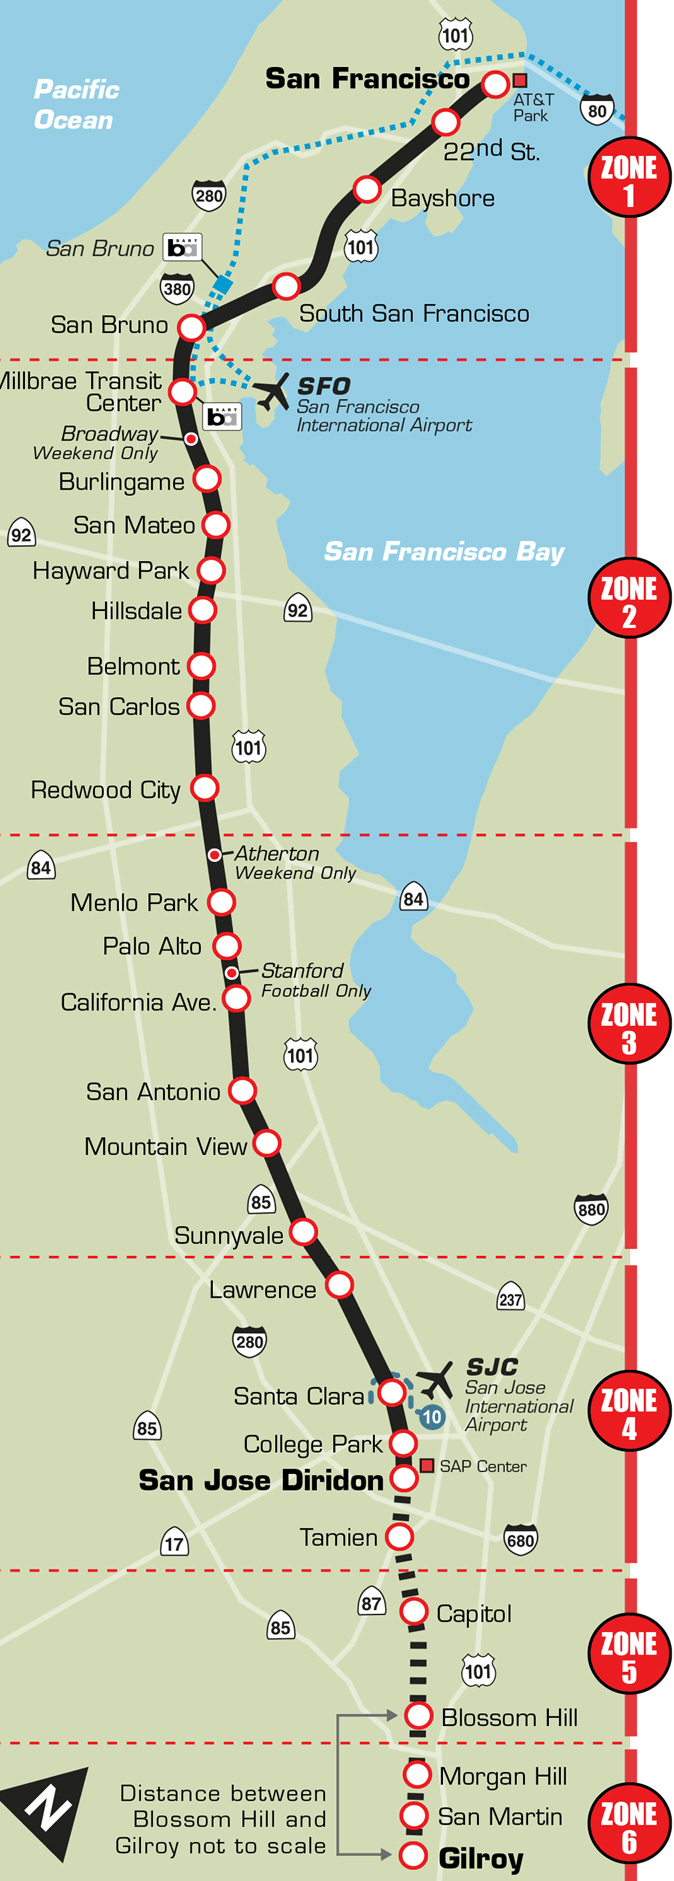 caltrain vs san francisco bart  faq  hotels near san francisco  - caltrainofficalthumb